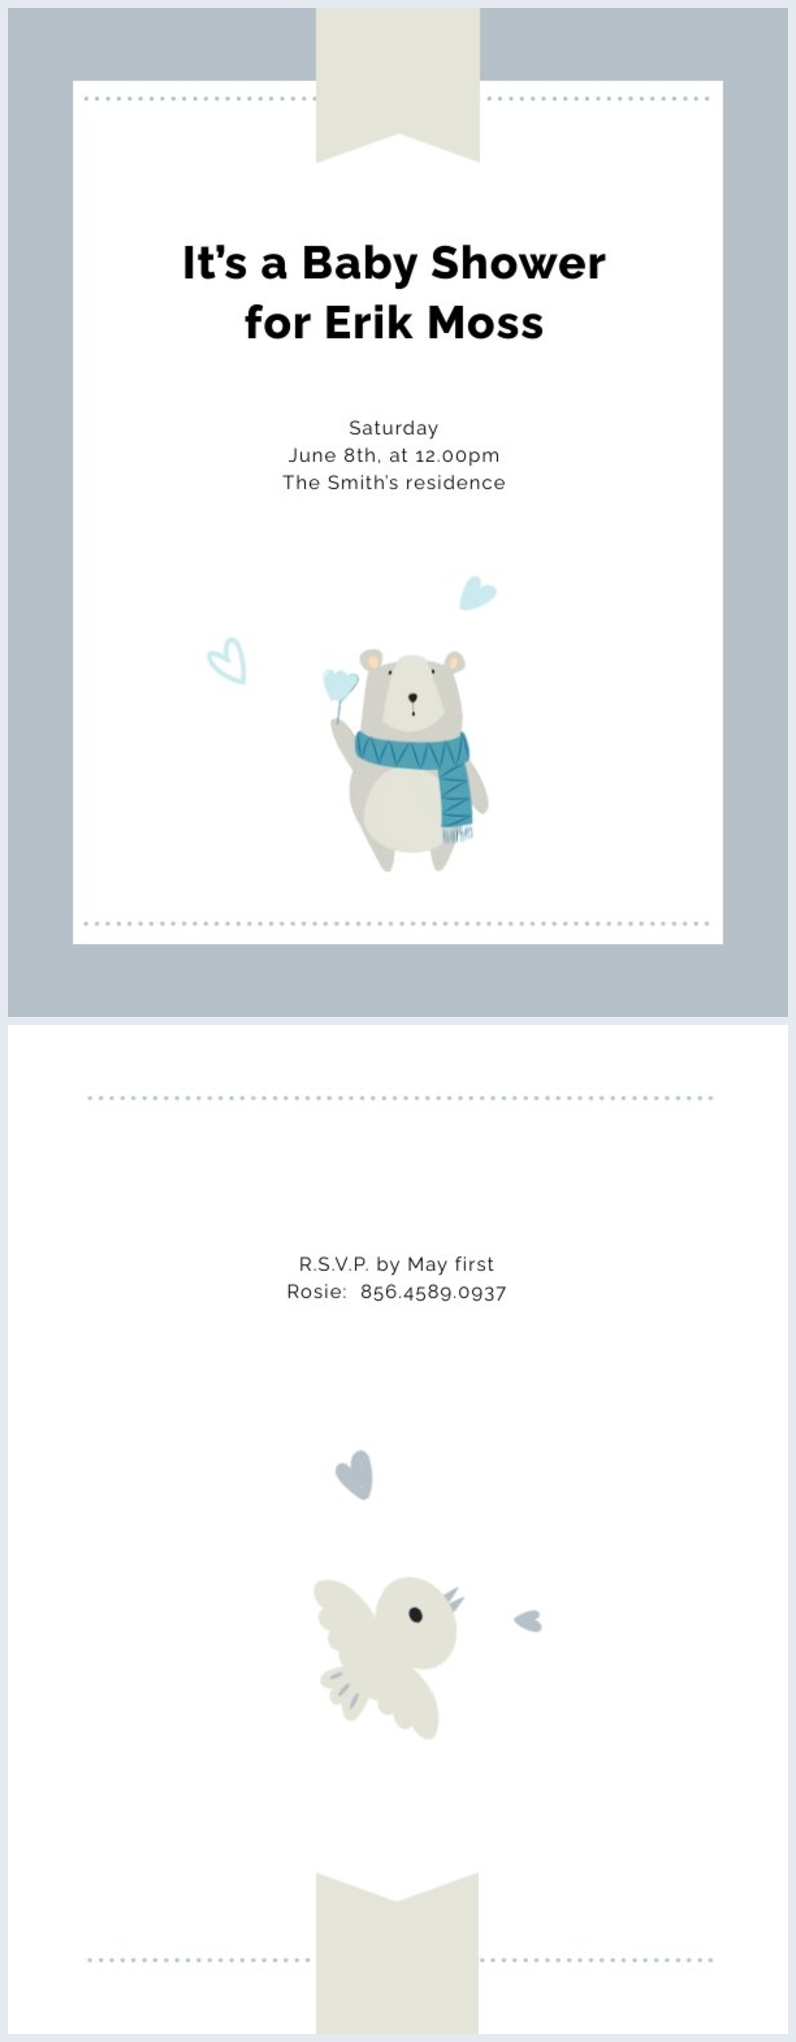 Exemple de mise en page d'invitation de baby shower